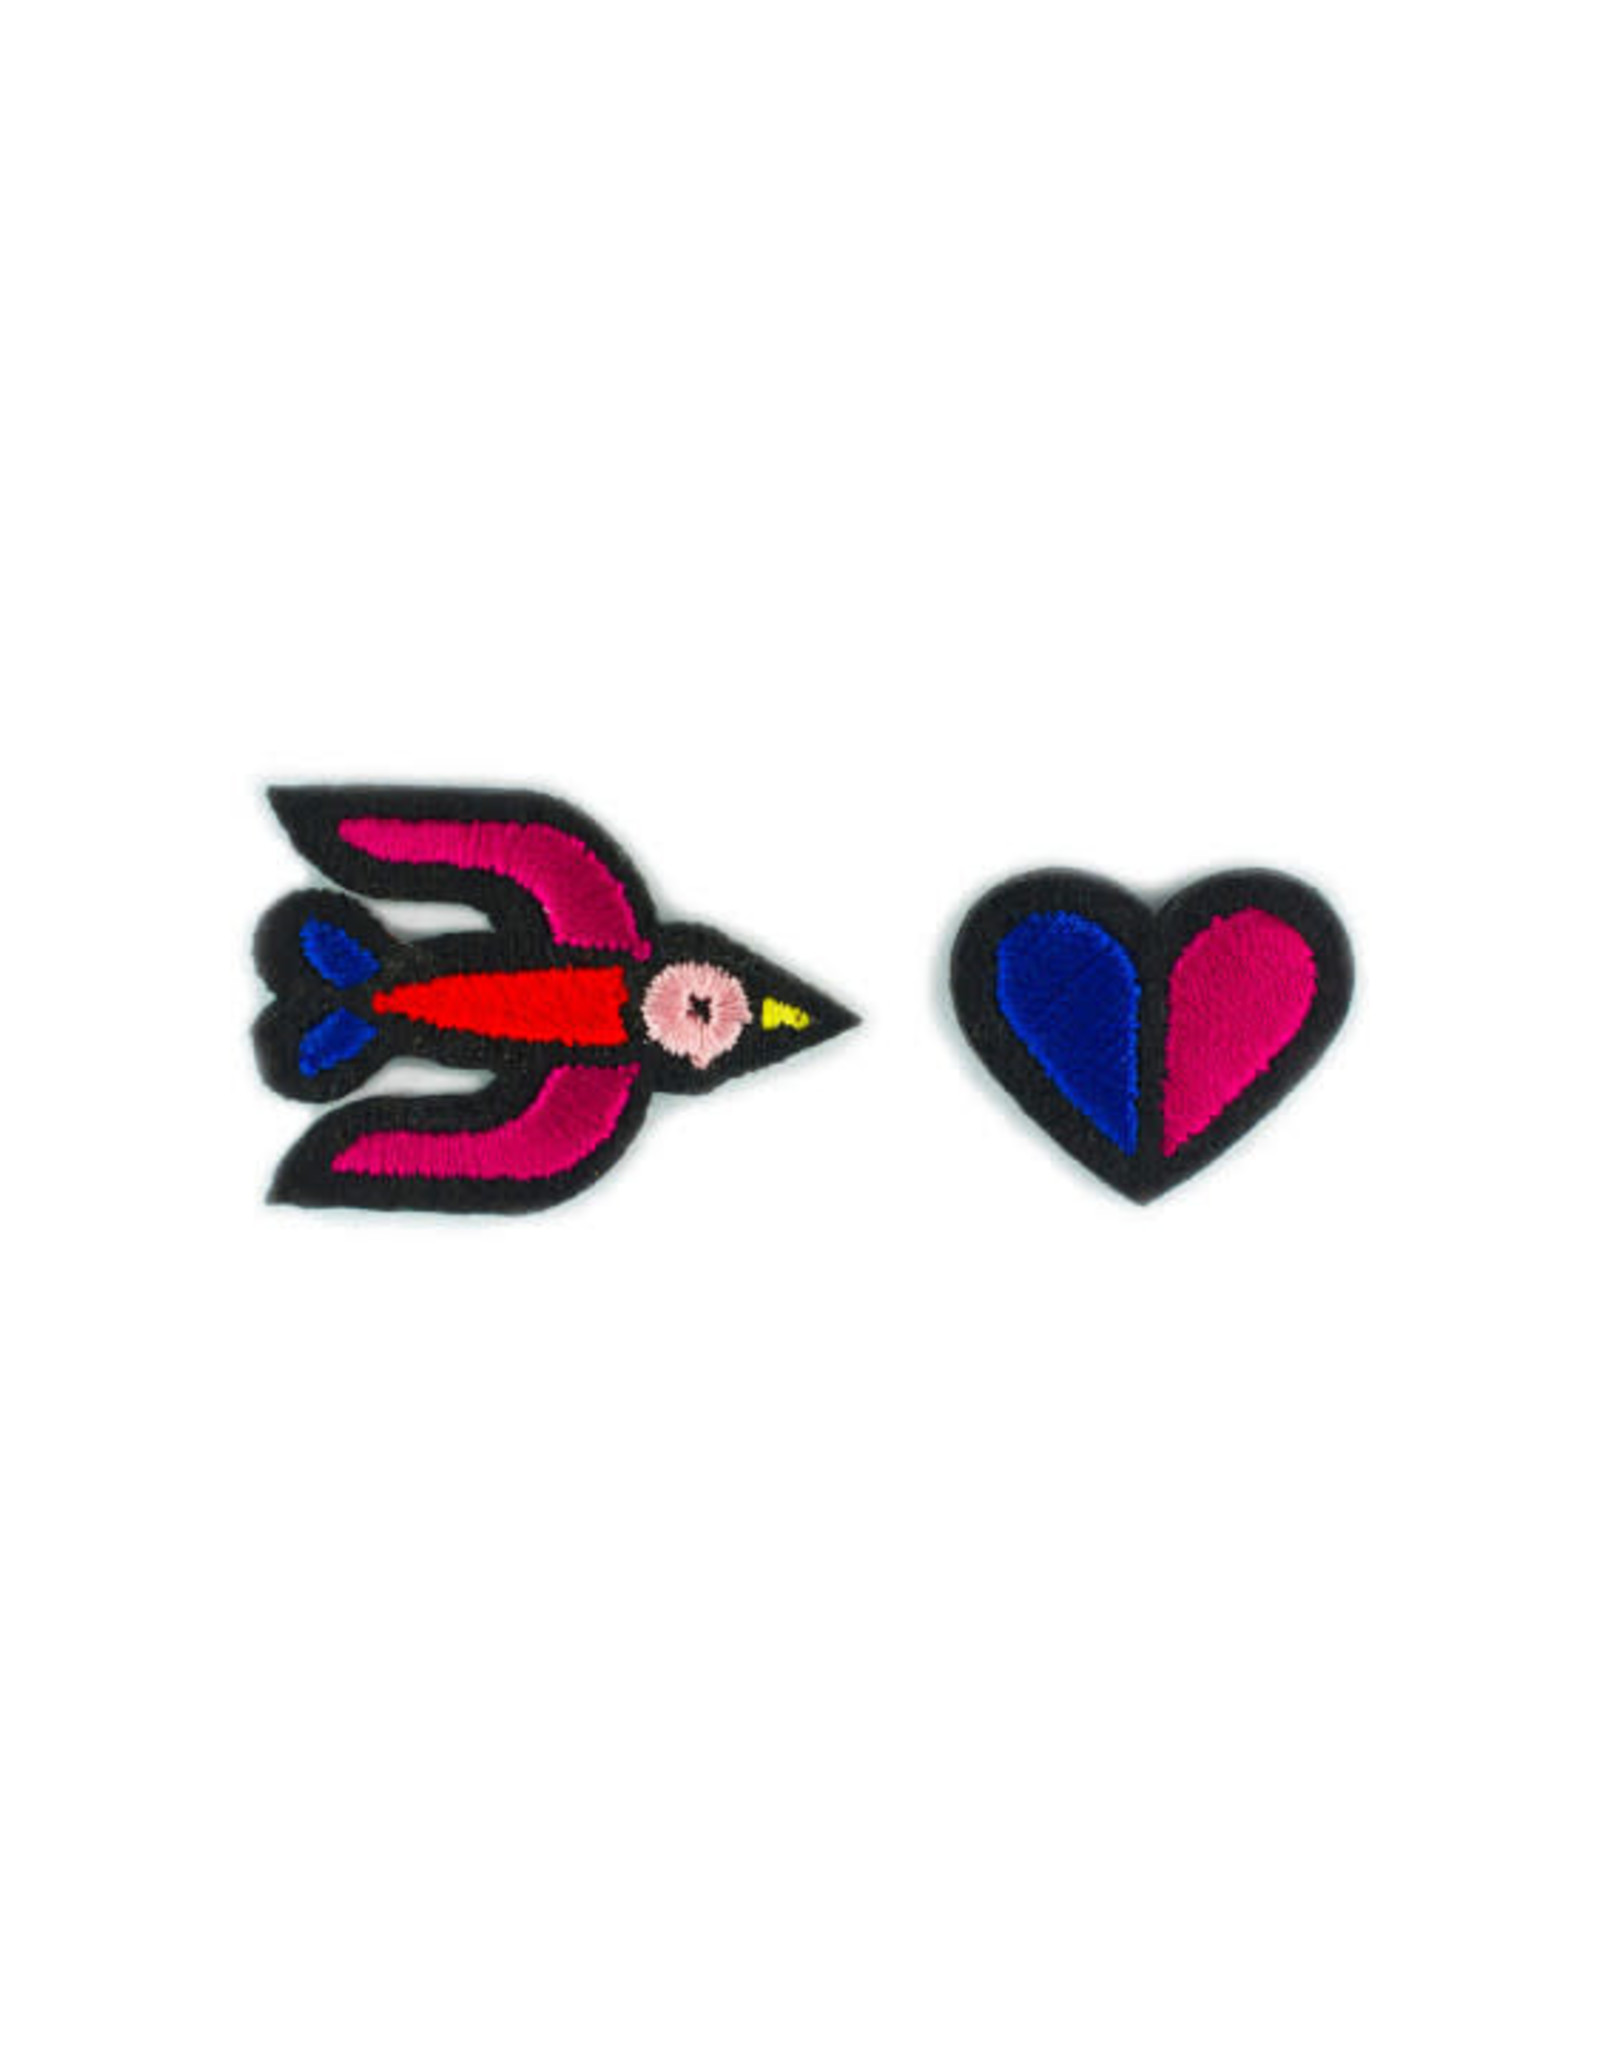 Macon&Lesquoy Patch - two patches - Red Swallow and two colored heart (blue + red)